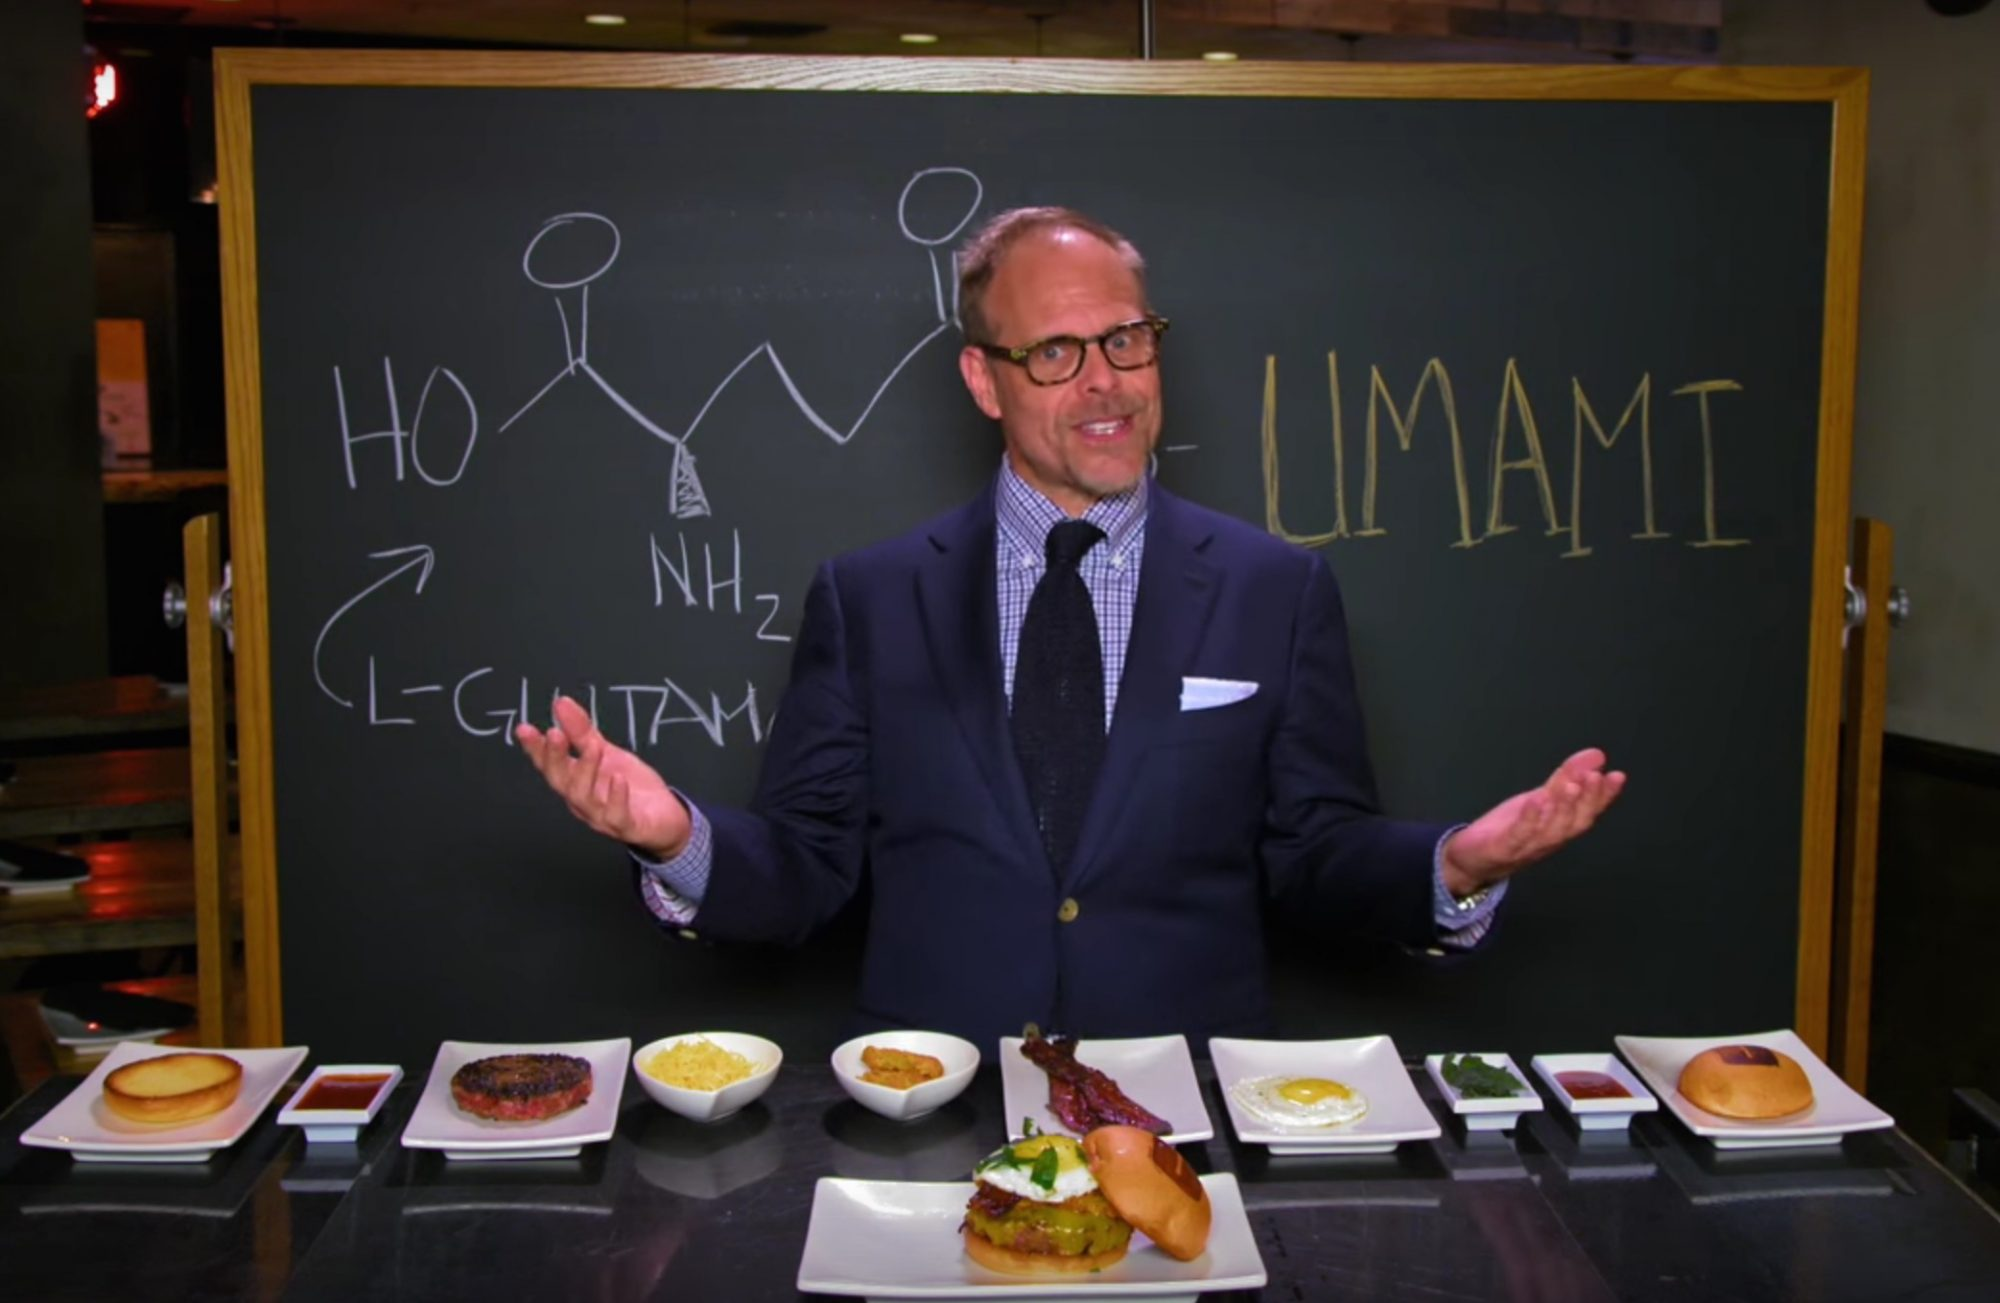 Alton Brown Umami Burger